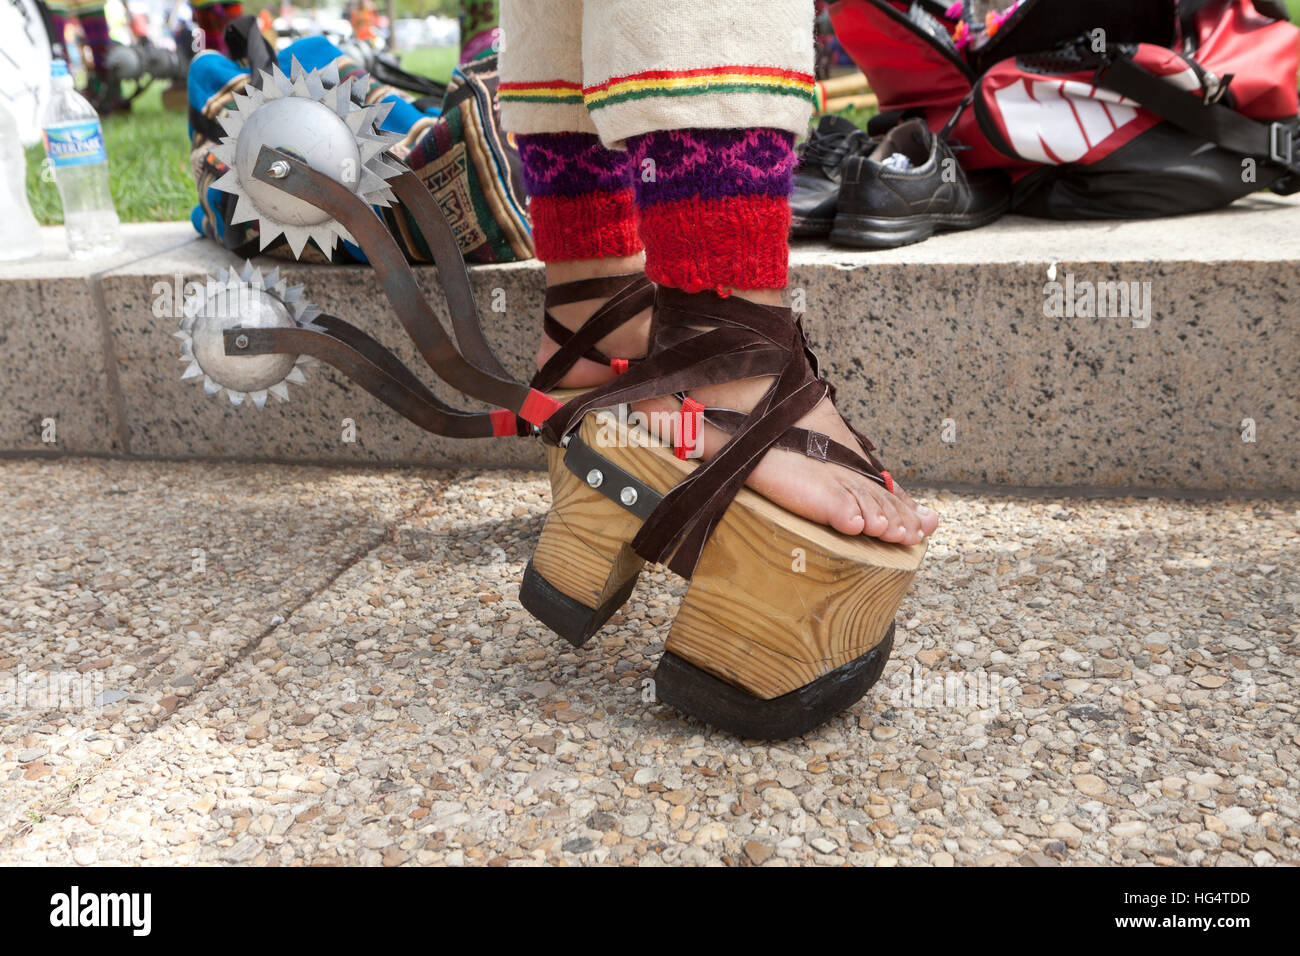 Wooden platform sandals and spurs on Pujllay dancer of the Quechuan people of Bolivia  - Washington, DC USA - Stock Image